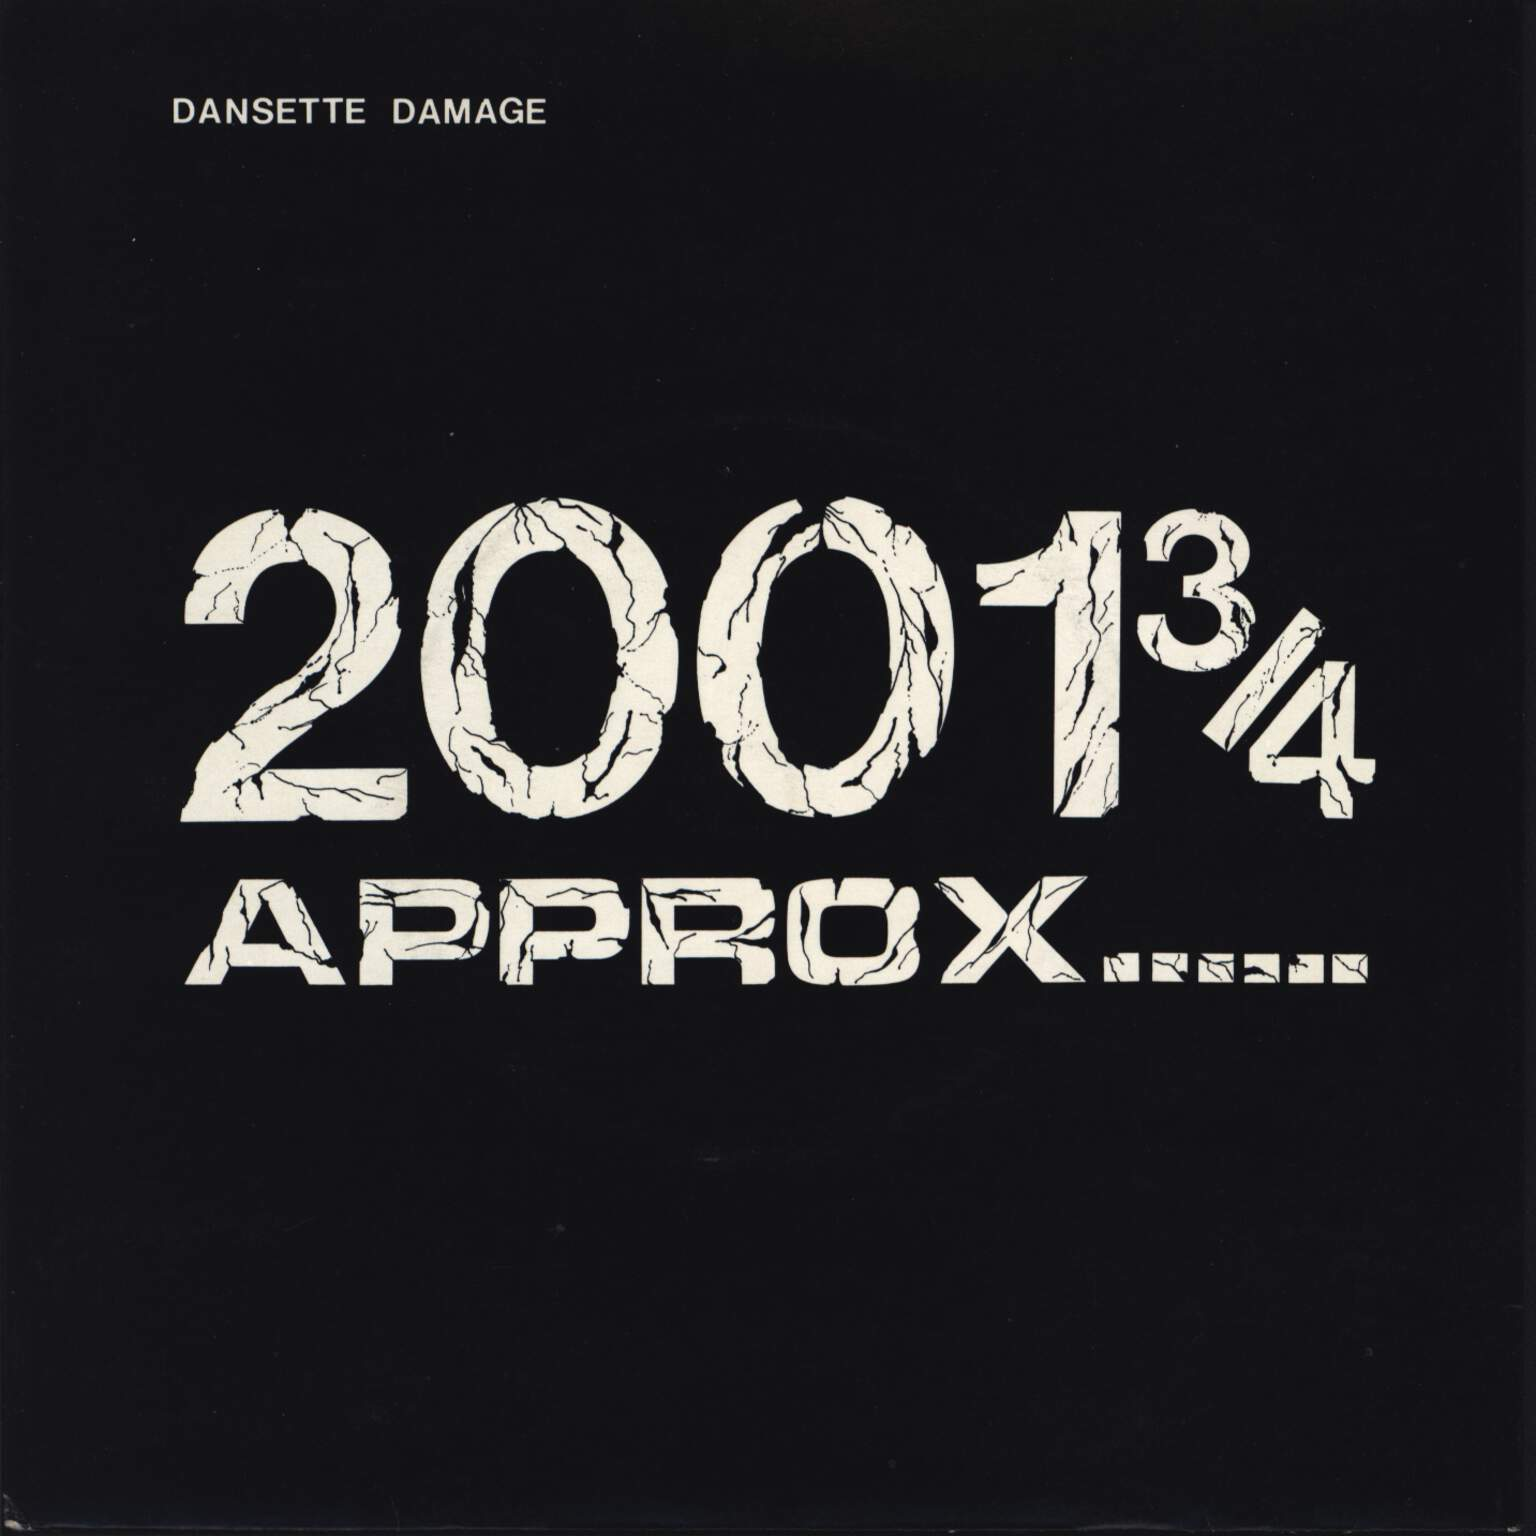 "Dansette Damage: 2001 3/4 Approx......, 7"" Single (Vinyl)"